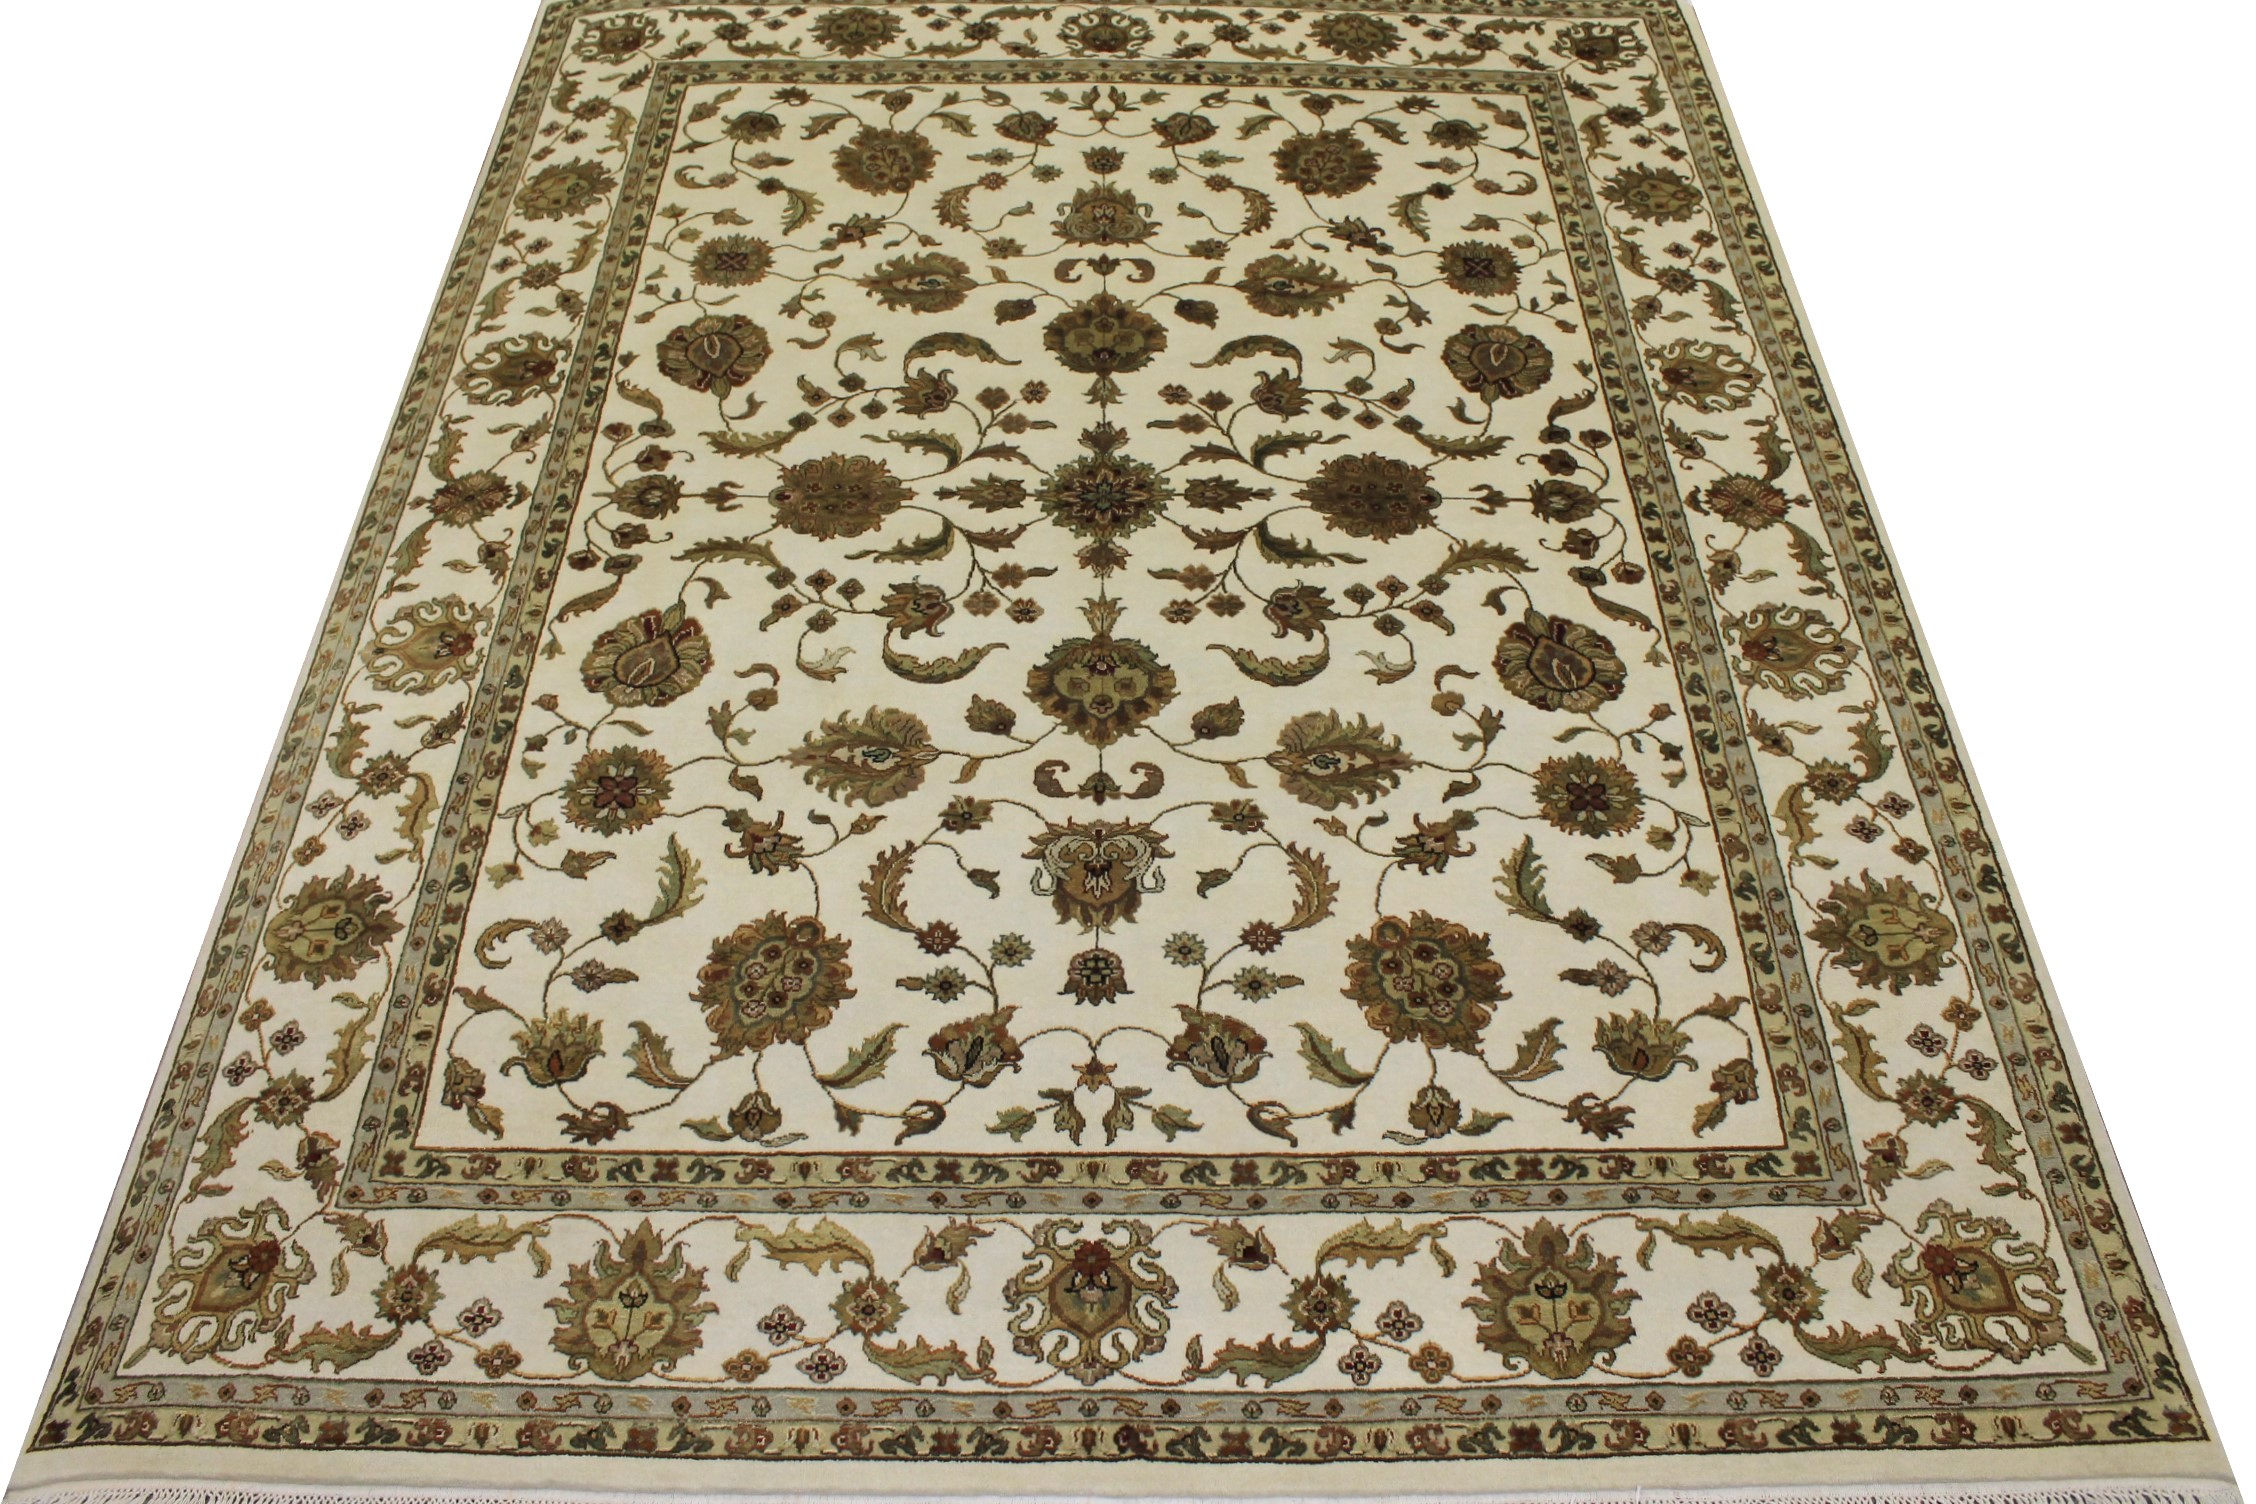 8x10 Silk Flower Hand Knotted Wool Area Rug - MR11354